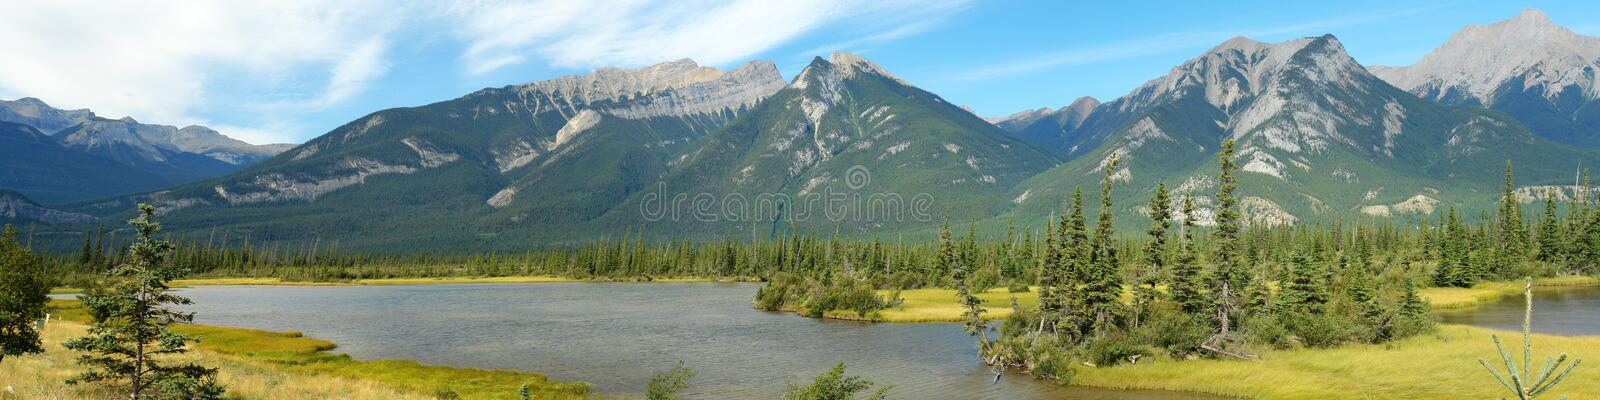 Jasper lake and rocky mountains. Summer view of the jasper lake and rocky mountains in the jasper national park, alberta, canada stock image